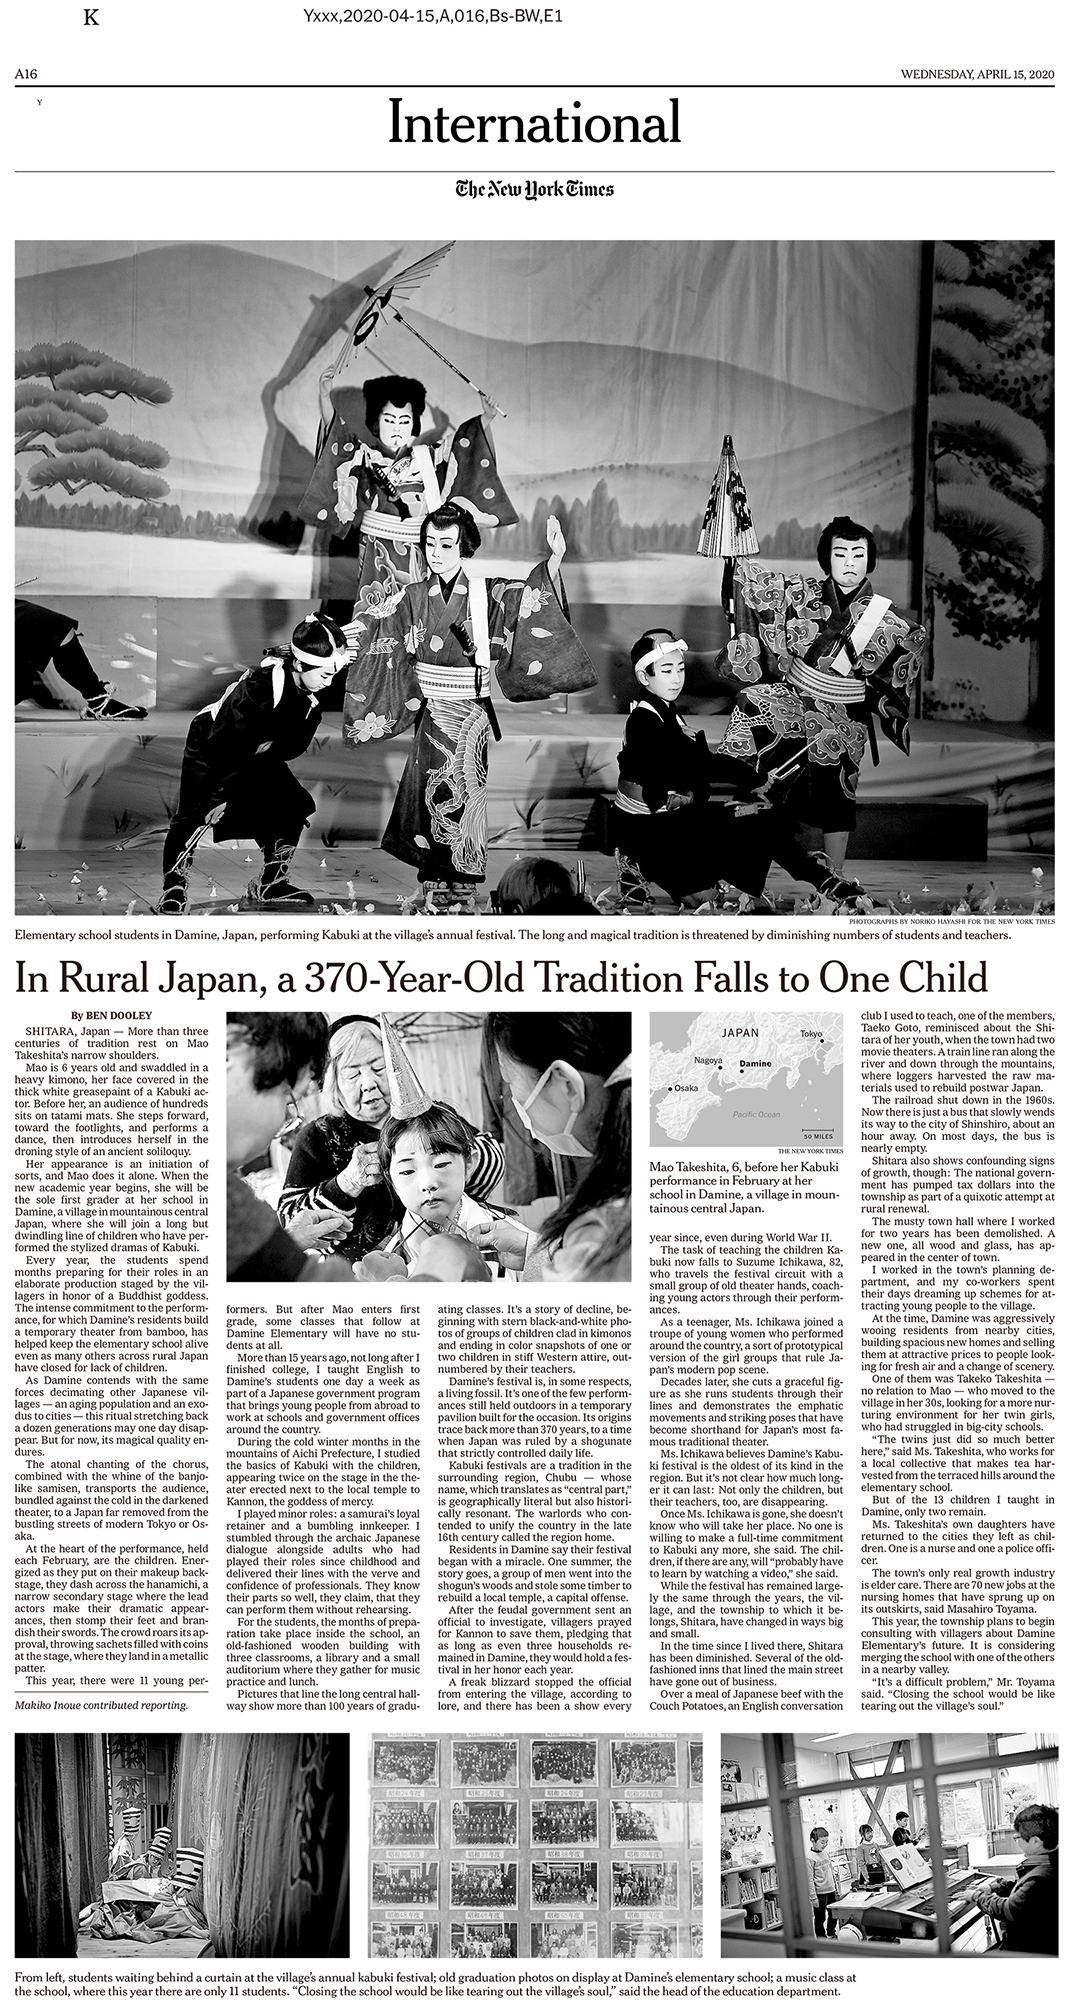 NYT#NYTimes#04-15-2020#National#1#ForDress#1#cci